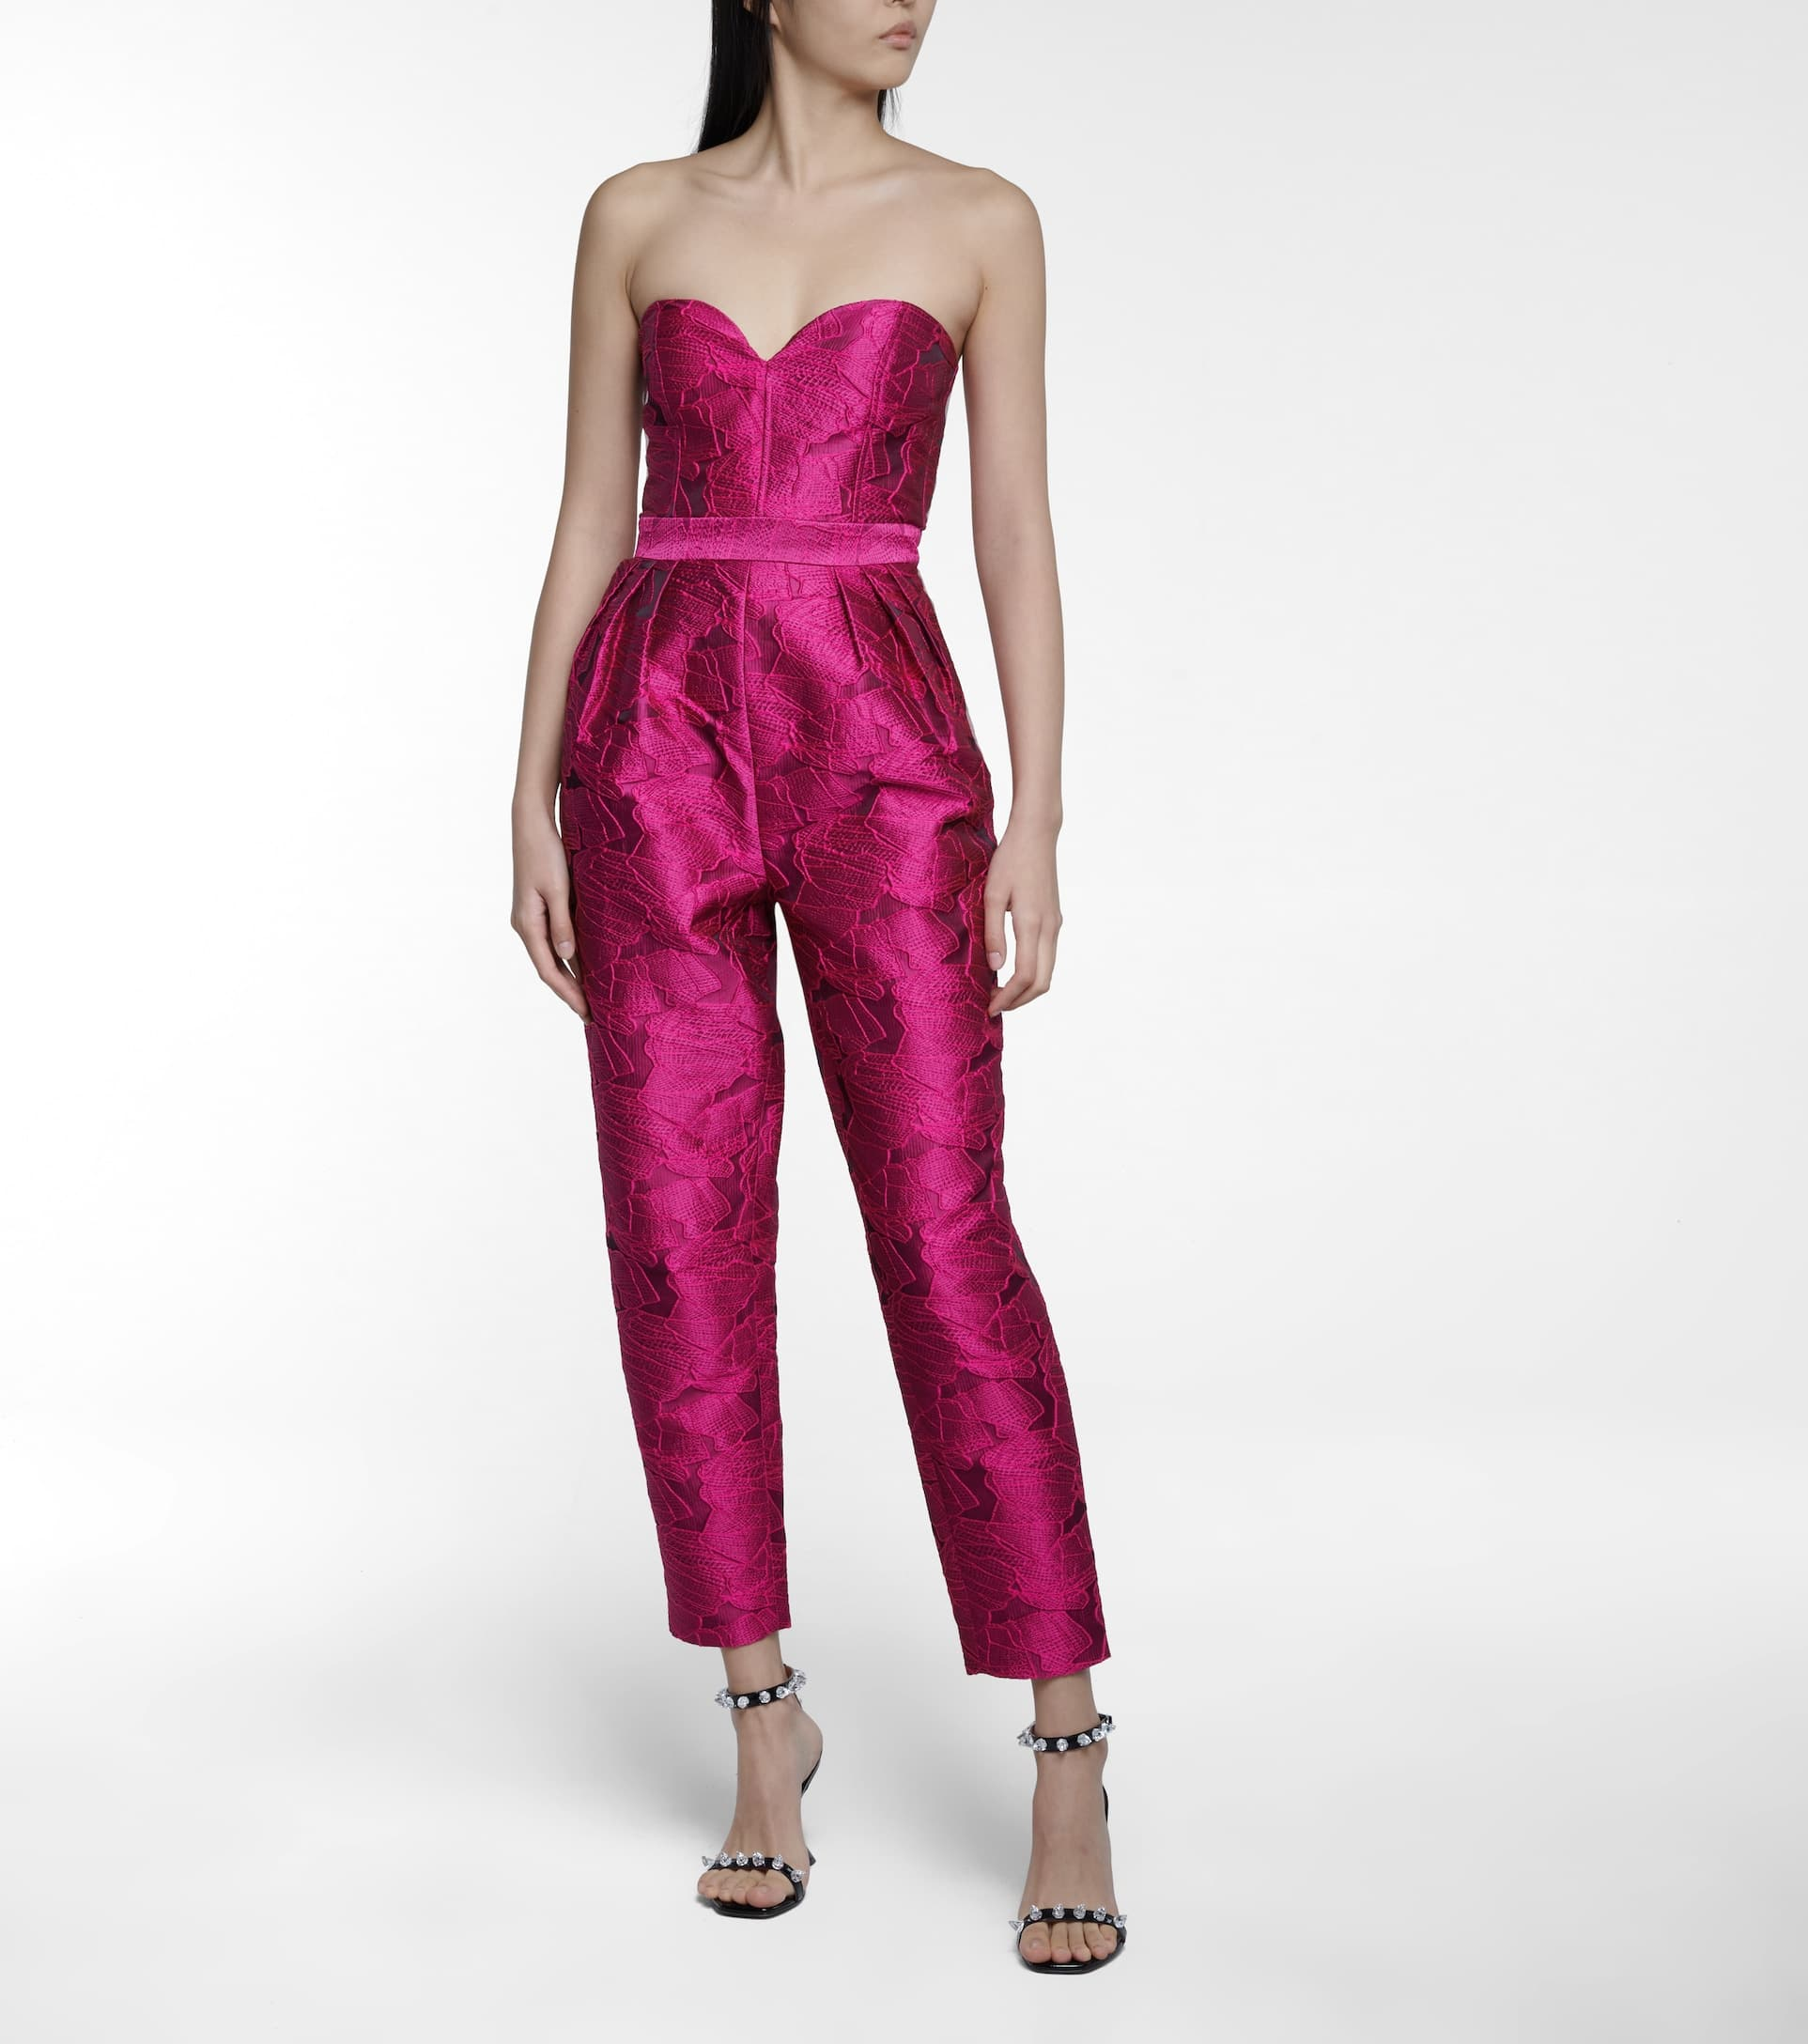 Girl in a pink jumpsuit